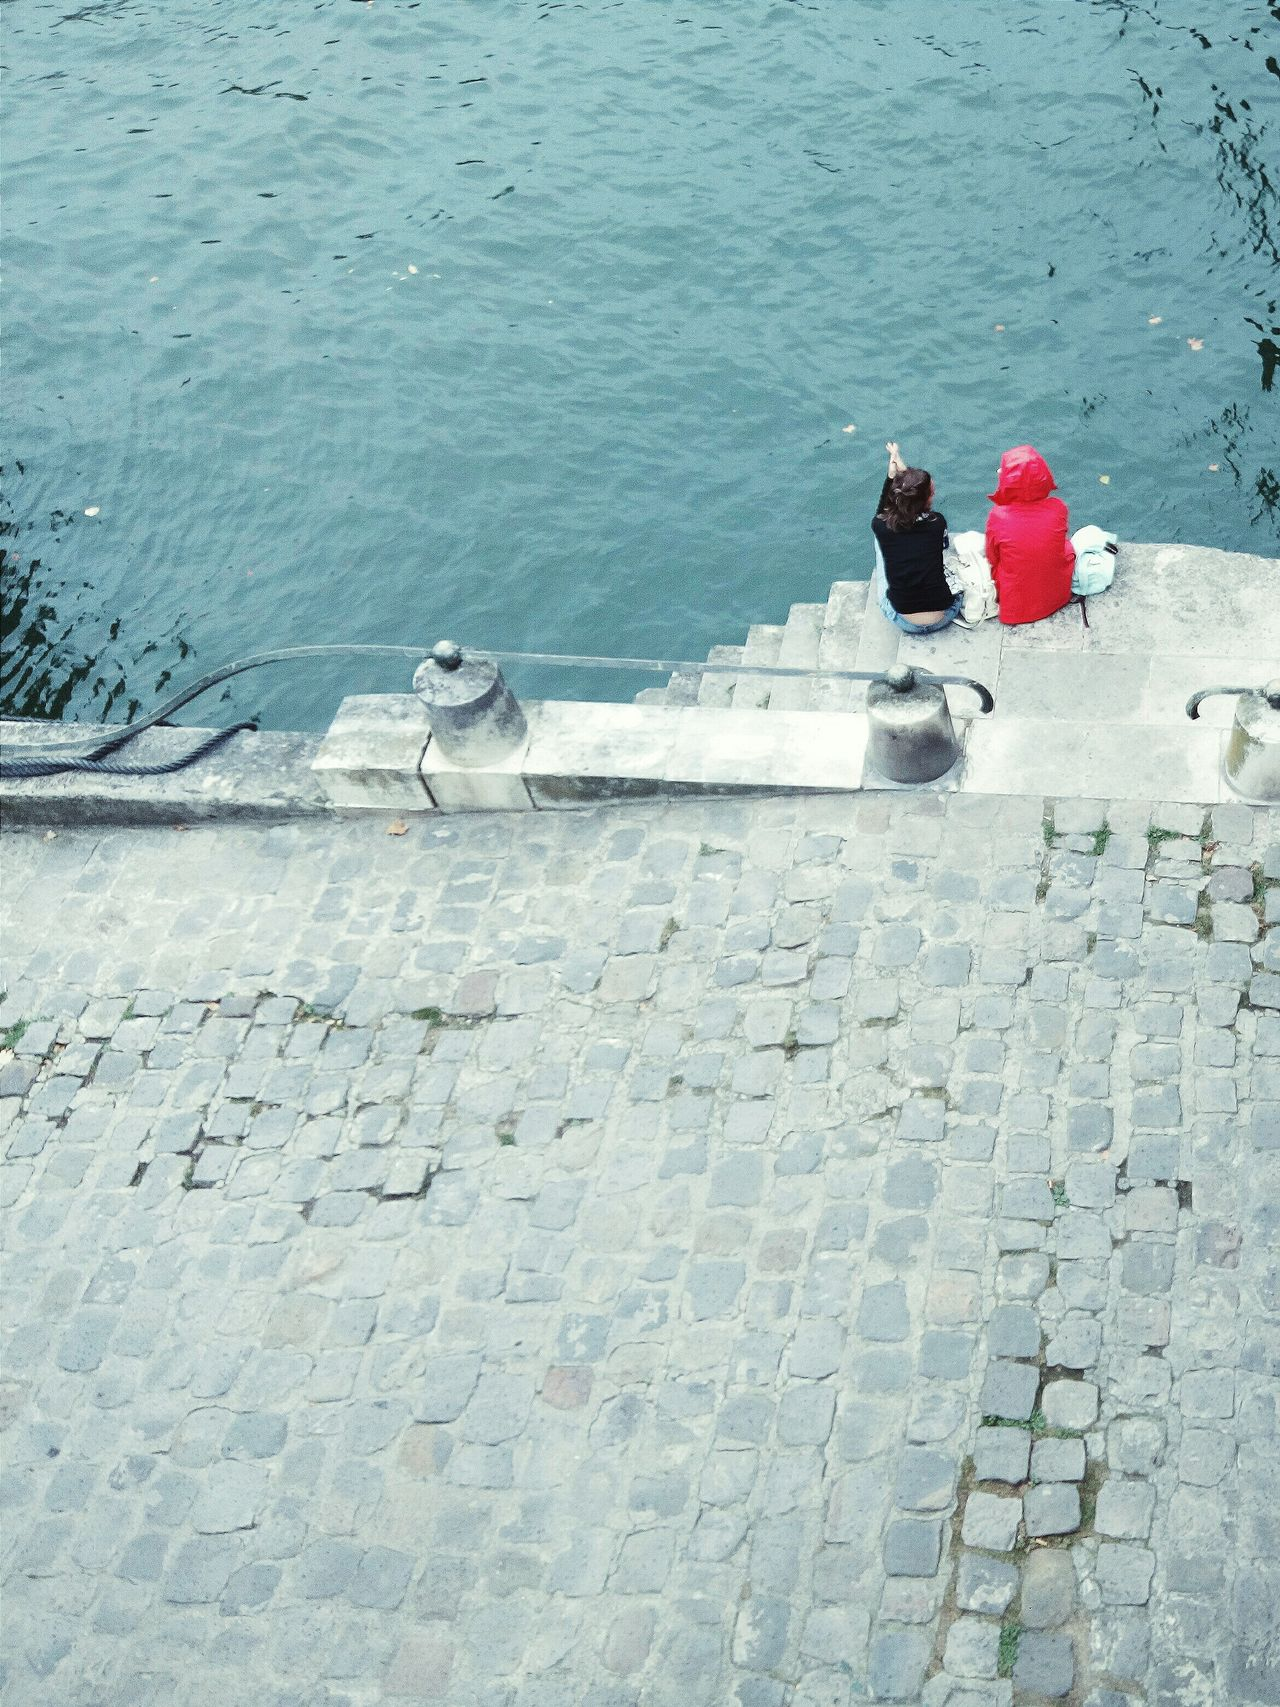 Cold Temperature Tranquility Relaxation Water Vacations Nature Tranquil Scene Day Person Red Scenics Outdoors Weekend Activities From Above  Telling Stories Differently Paris, France  Pivotal Ideas Jetty Raincoat Joined Together In Prayer Cobblestone Minimalist Architecture The Street Photographer - 2017 EyeEm Awards Neon Life Breathing Space